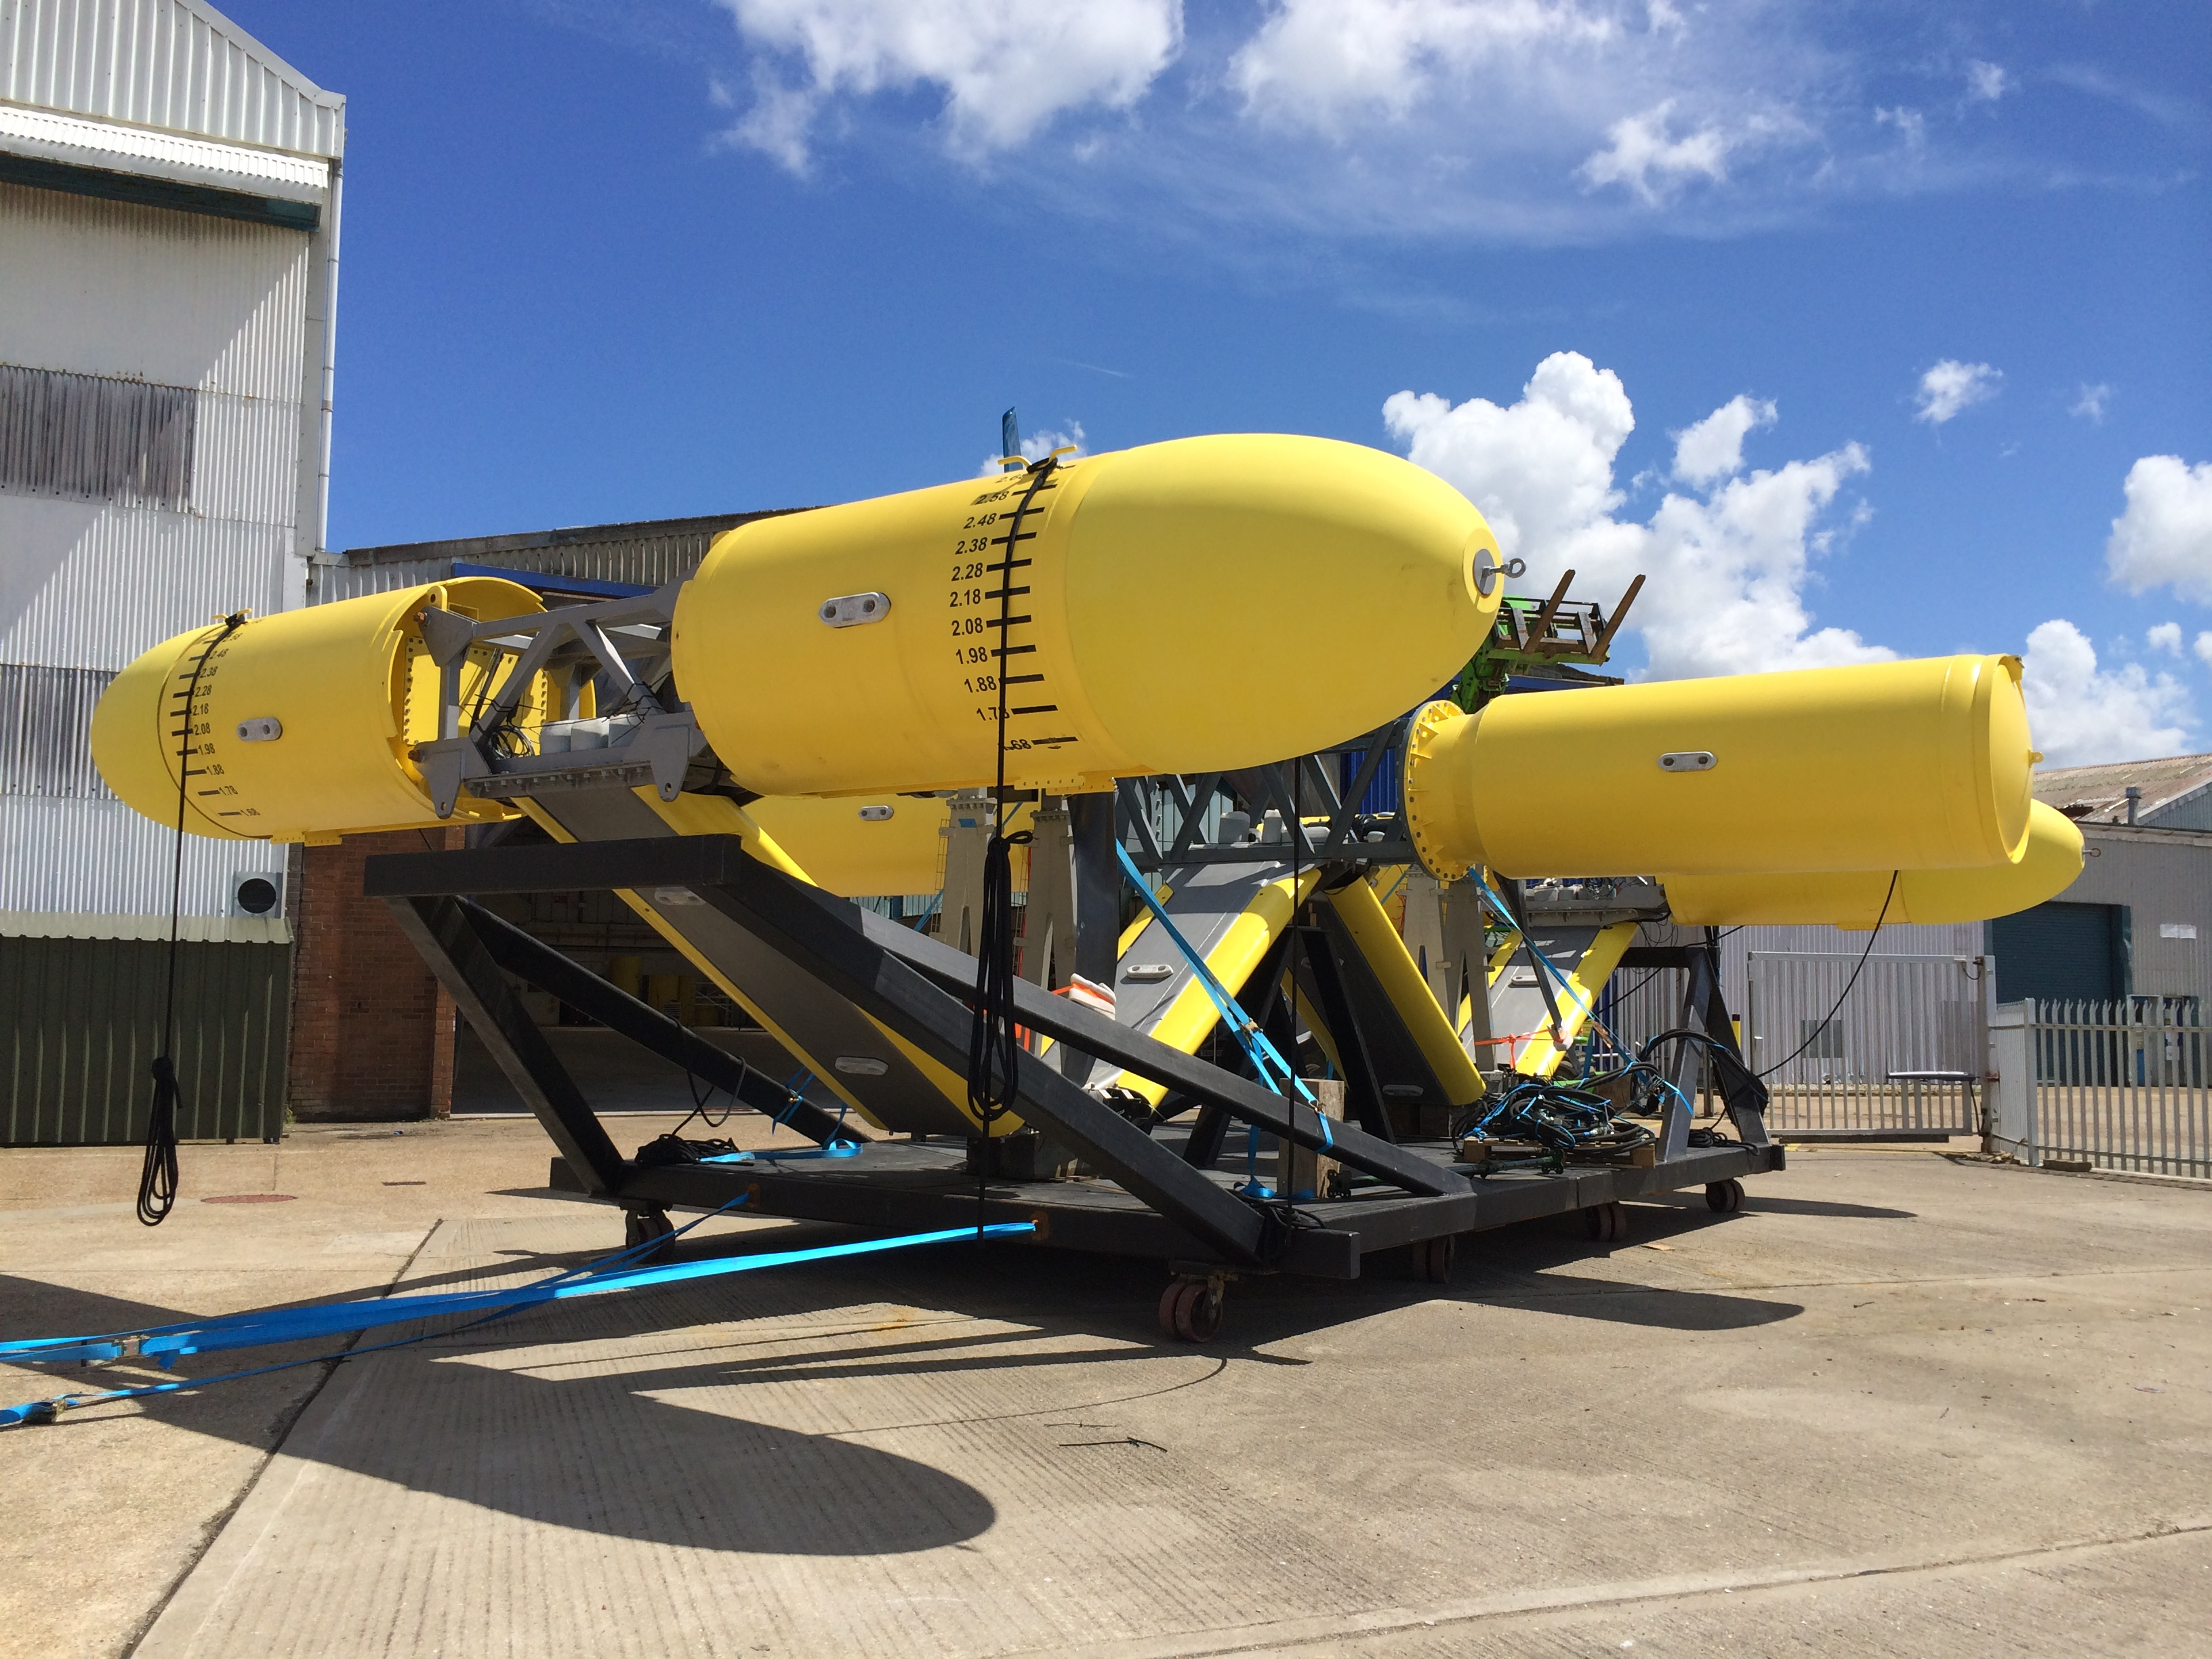 SME (Sustainable Marine Energy Ltd) PLAT-O 1 Tidal Turbine